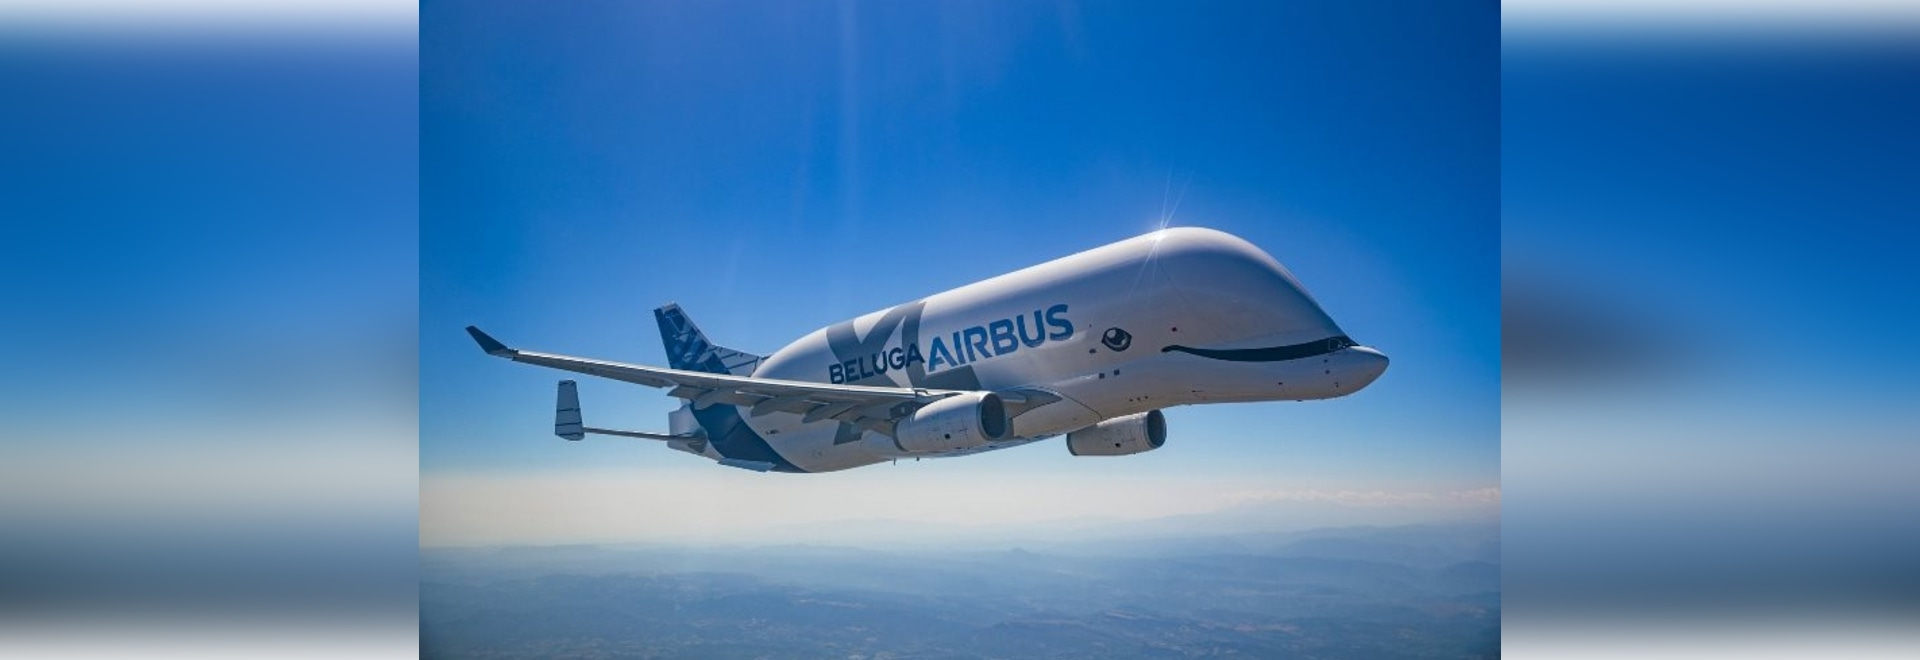 First of six Airbus BelugaXL aircraft enters service